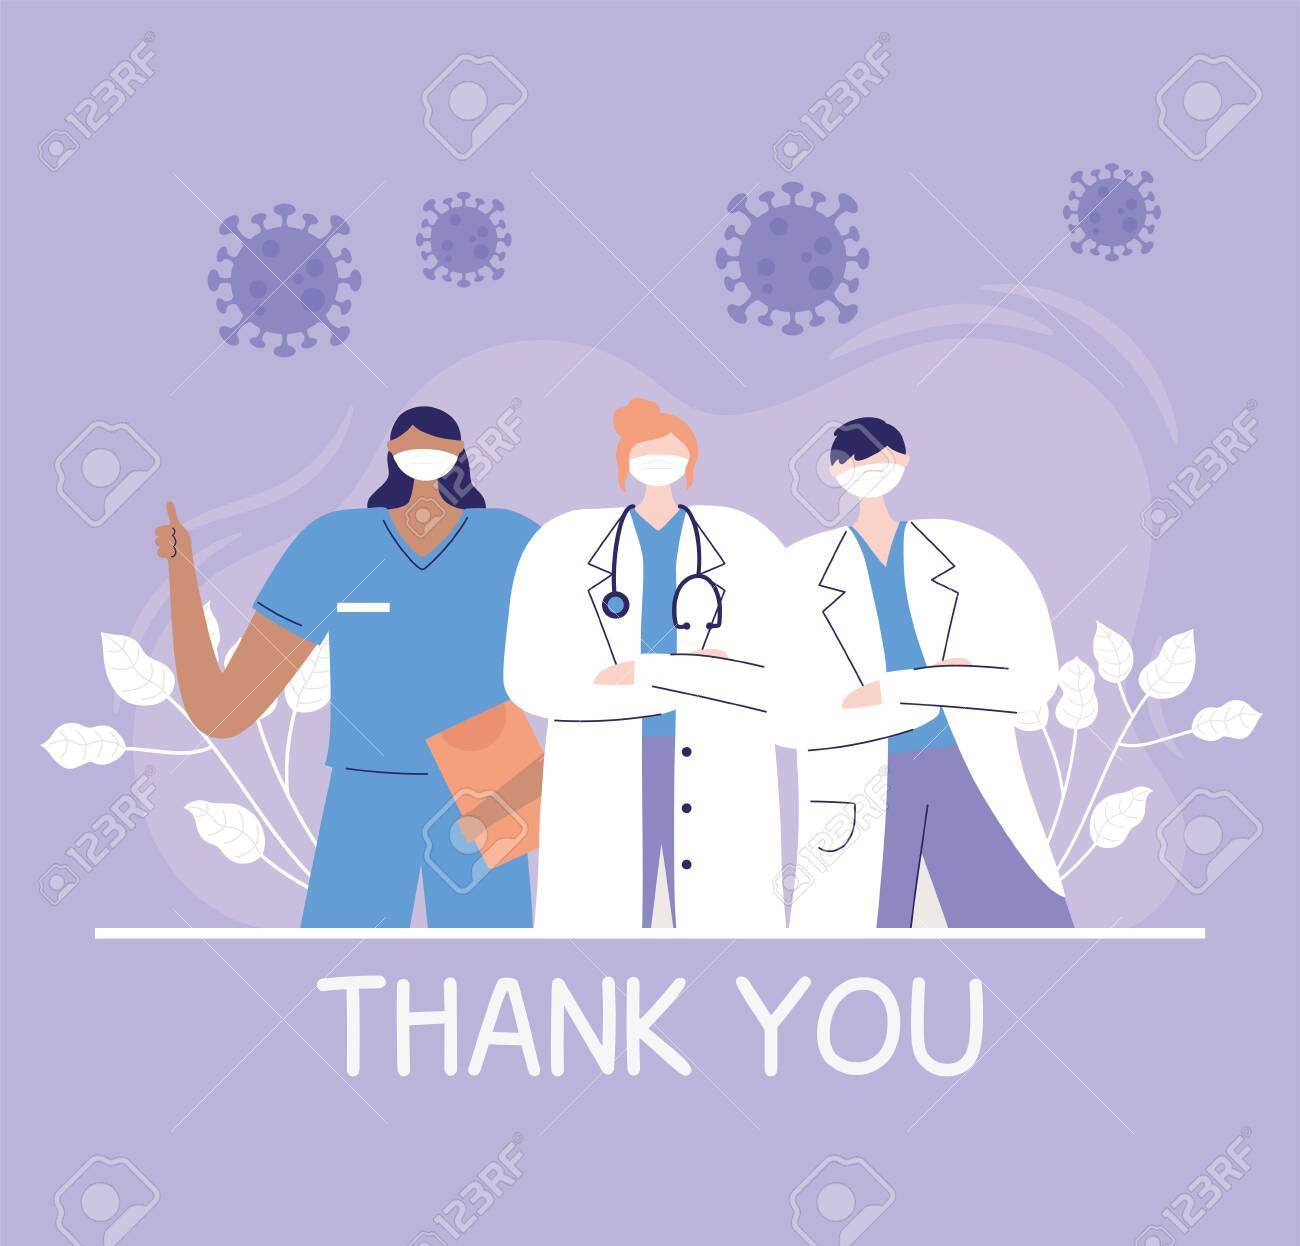 thank you doctors and nurses, physicians and nurse staff hospital team - 145254292